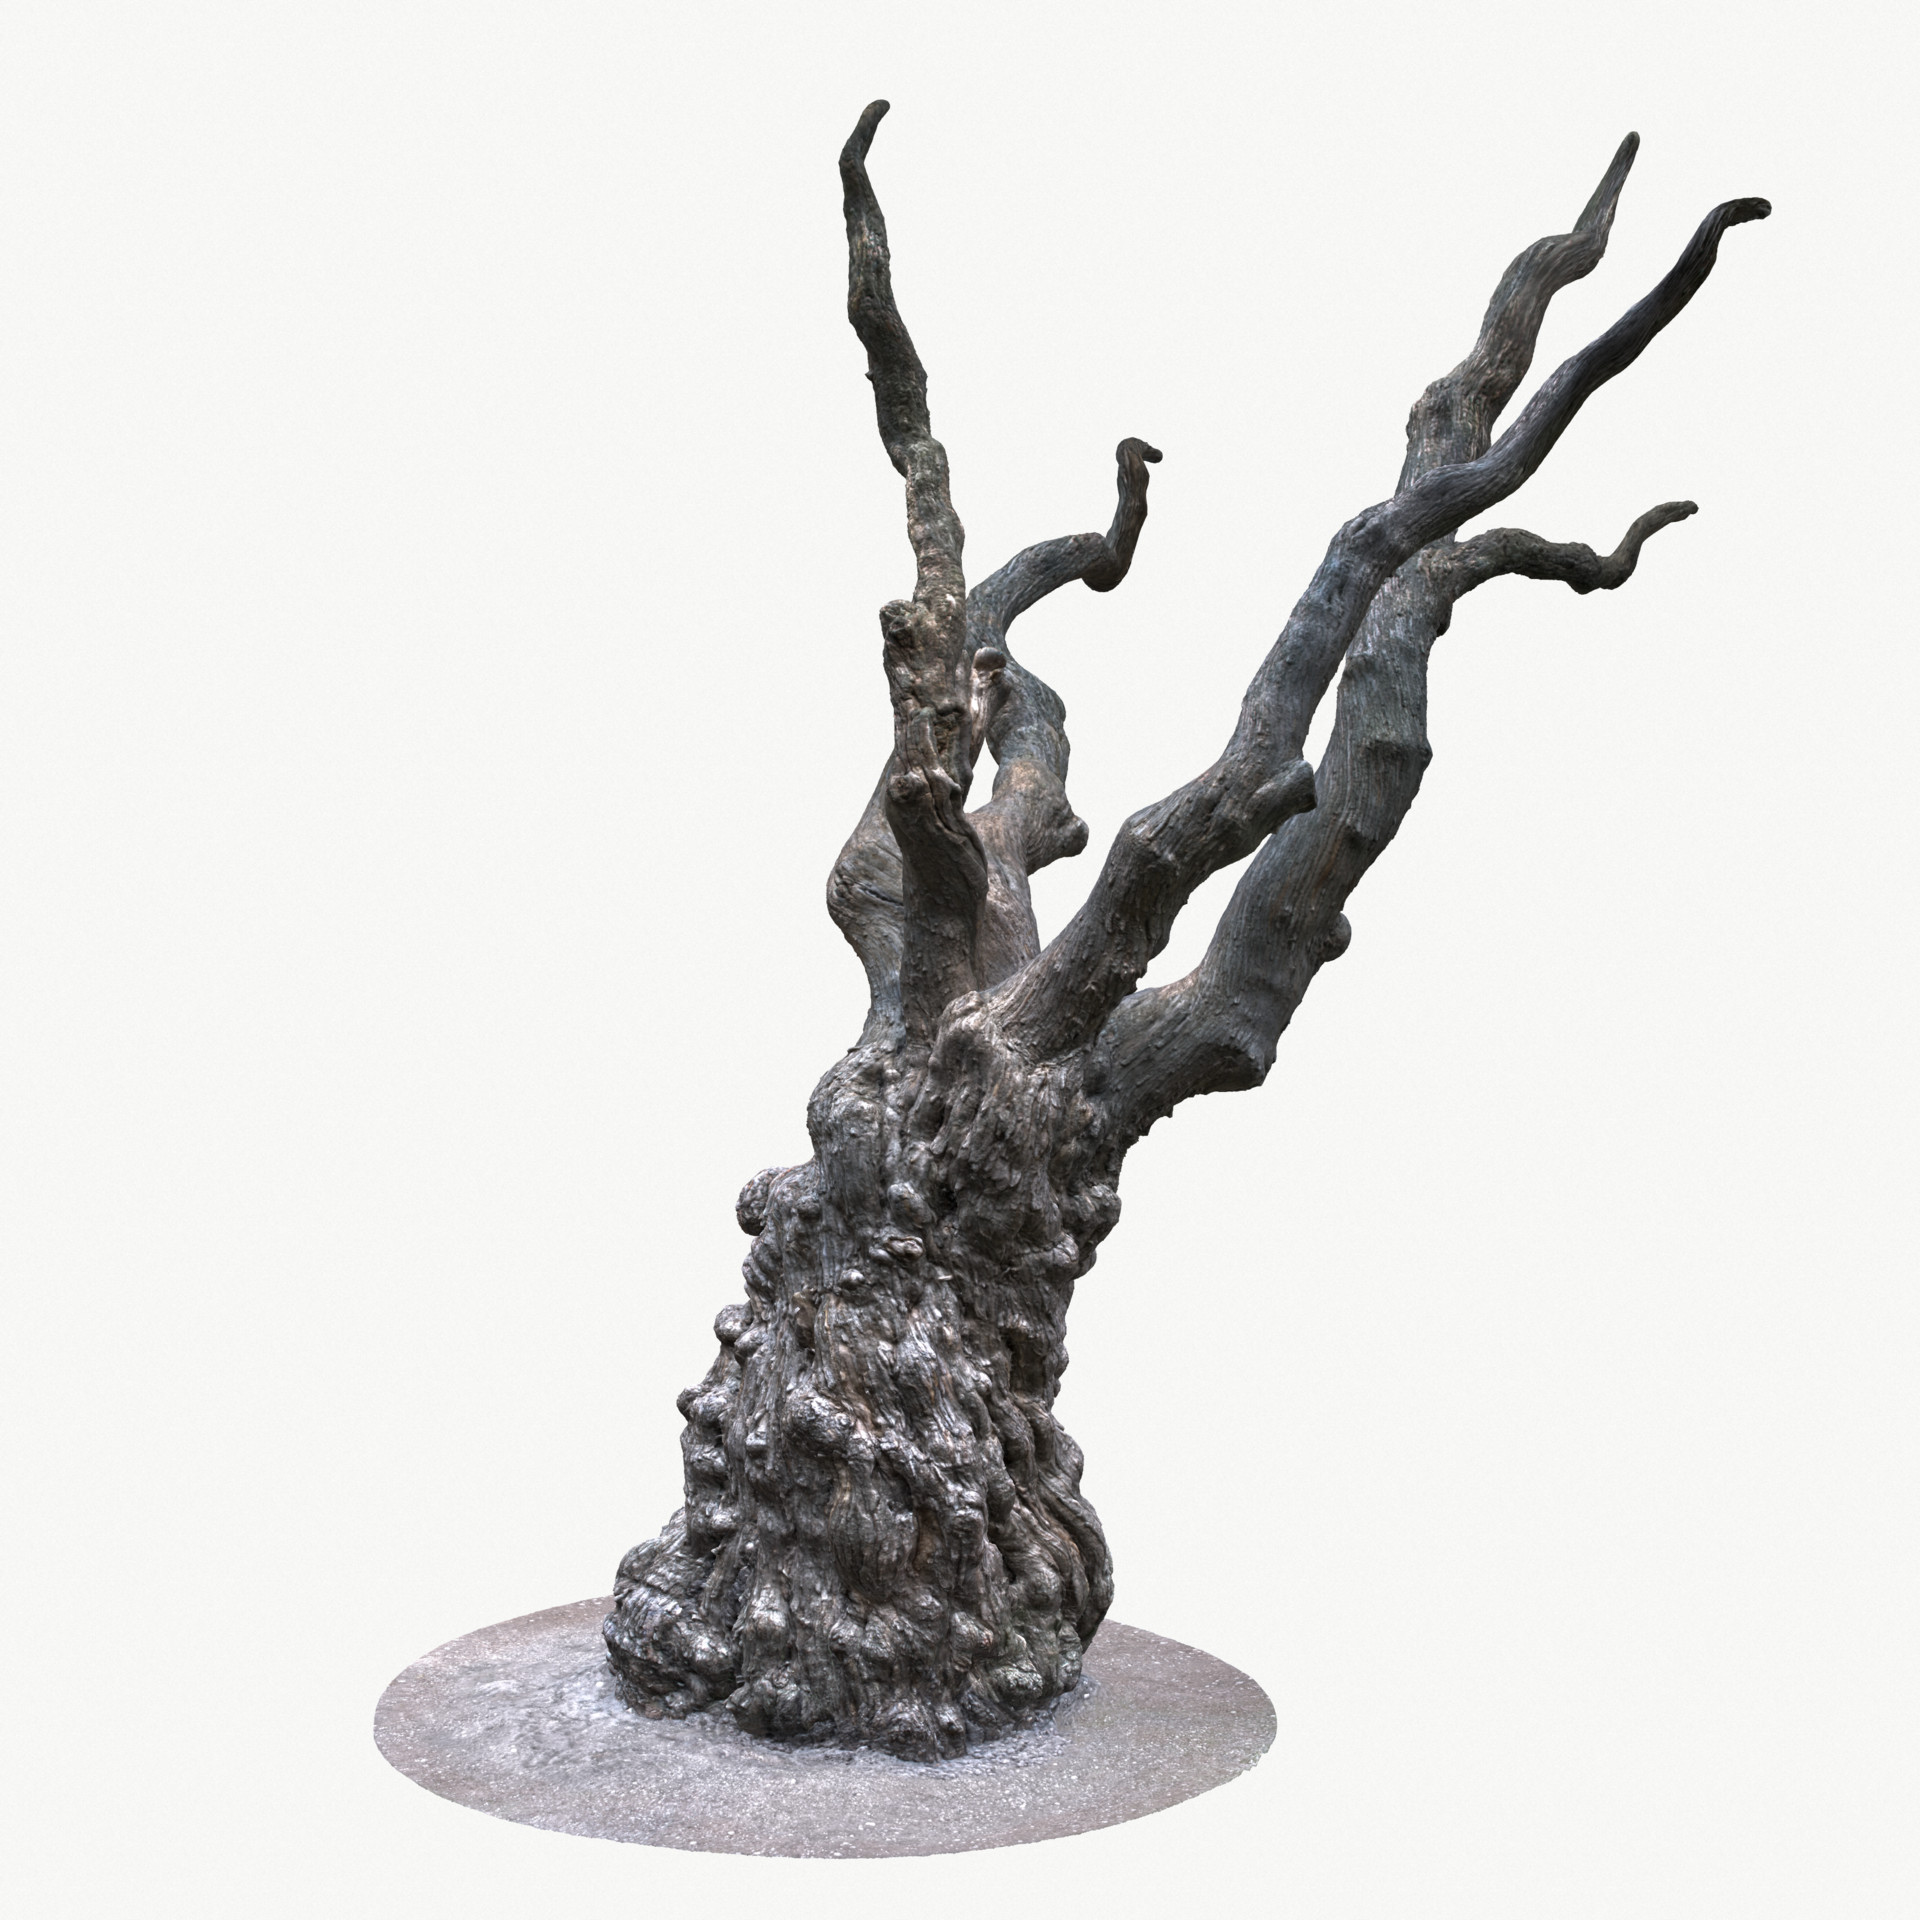 K o r e y b a · - Game Ready Tree Trunk Real-time 3D Model